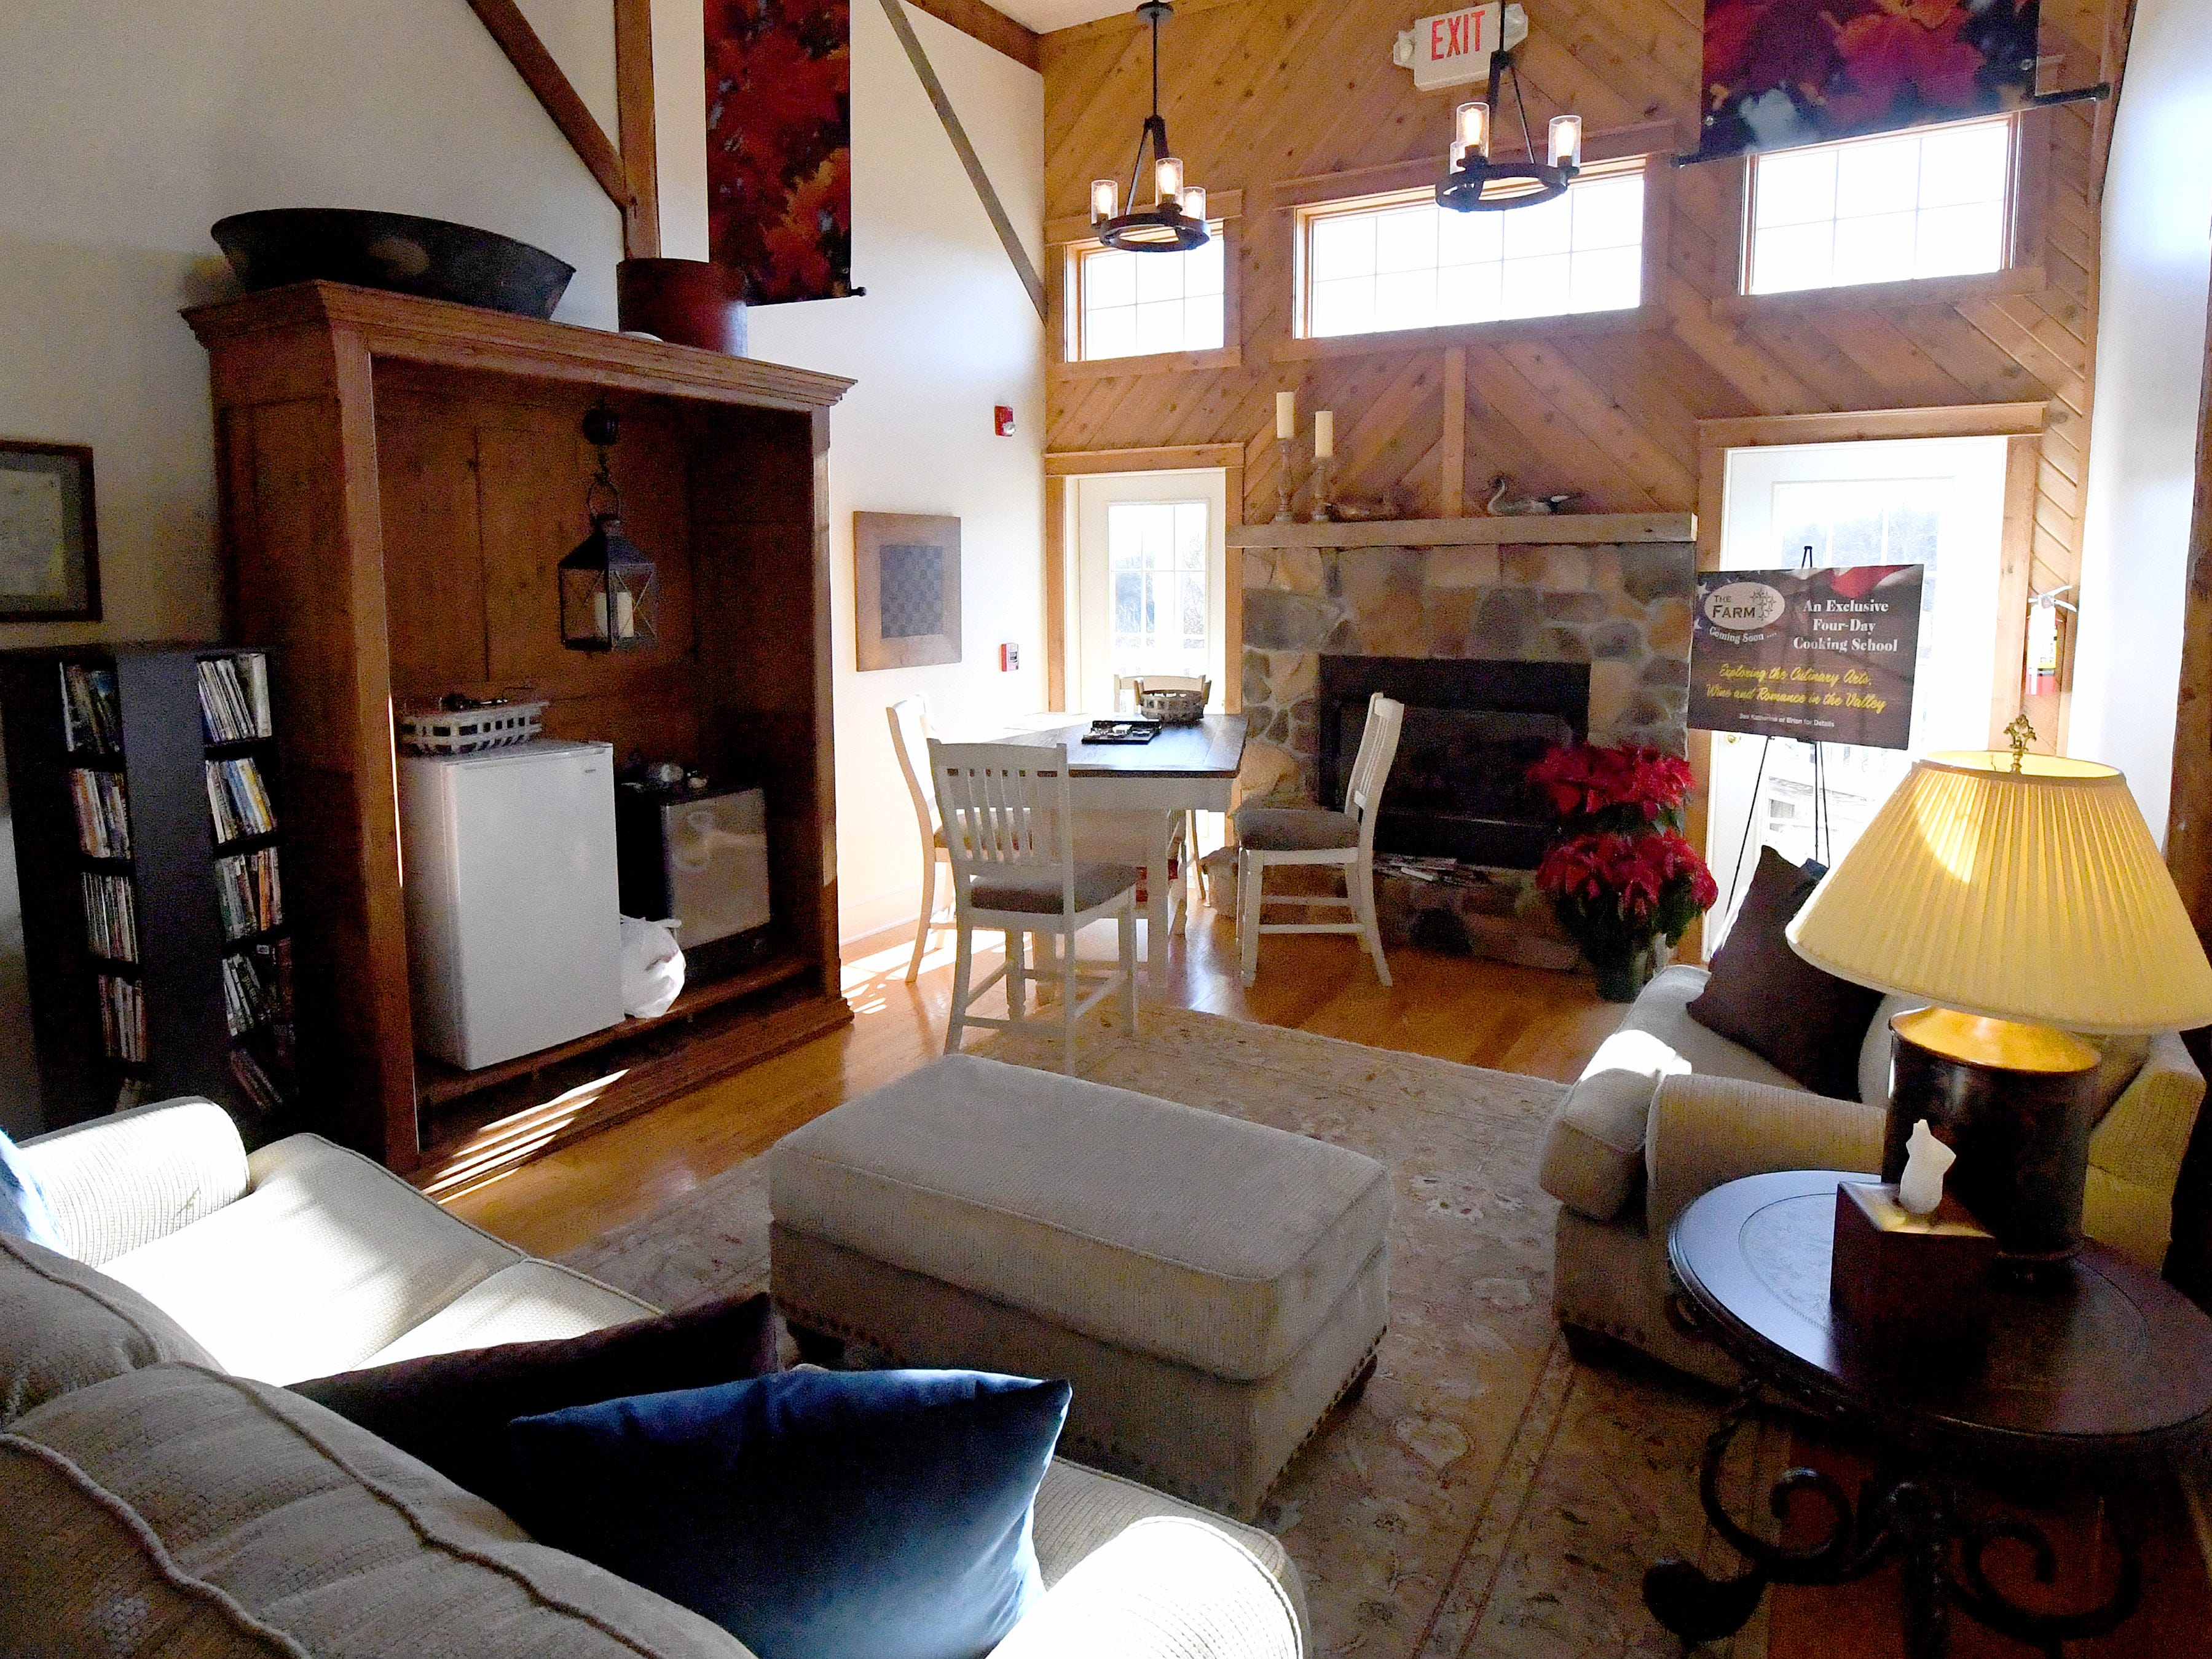 A shared common room inside the Millstone Barn at the Inn at WestShire Farms in Staunton.